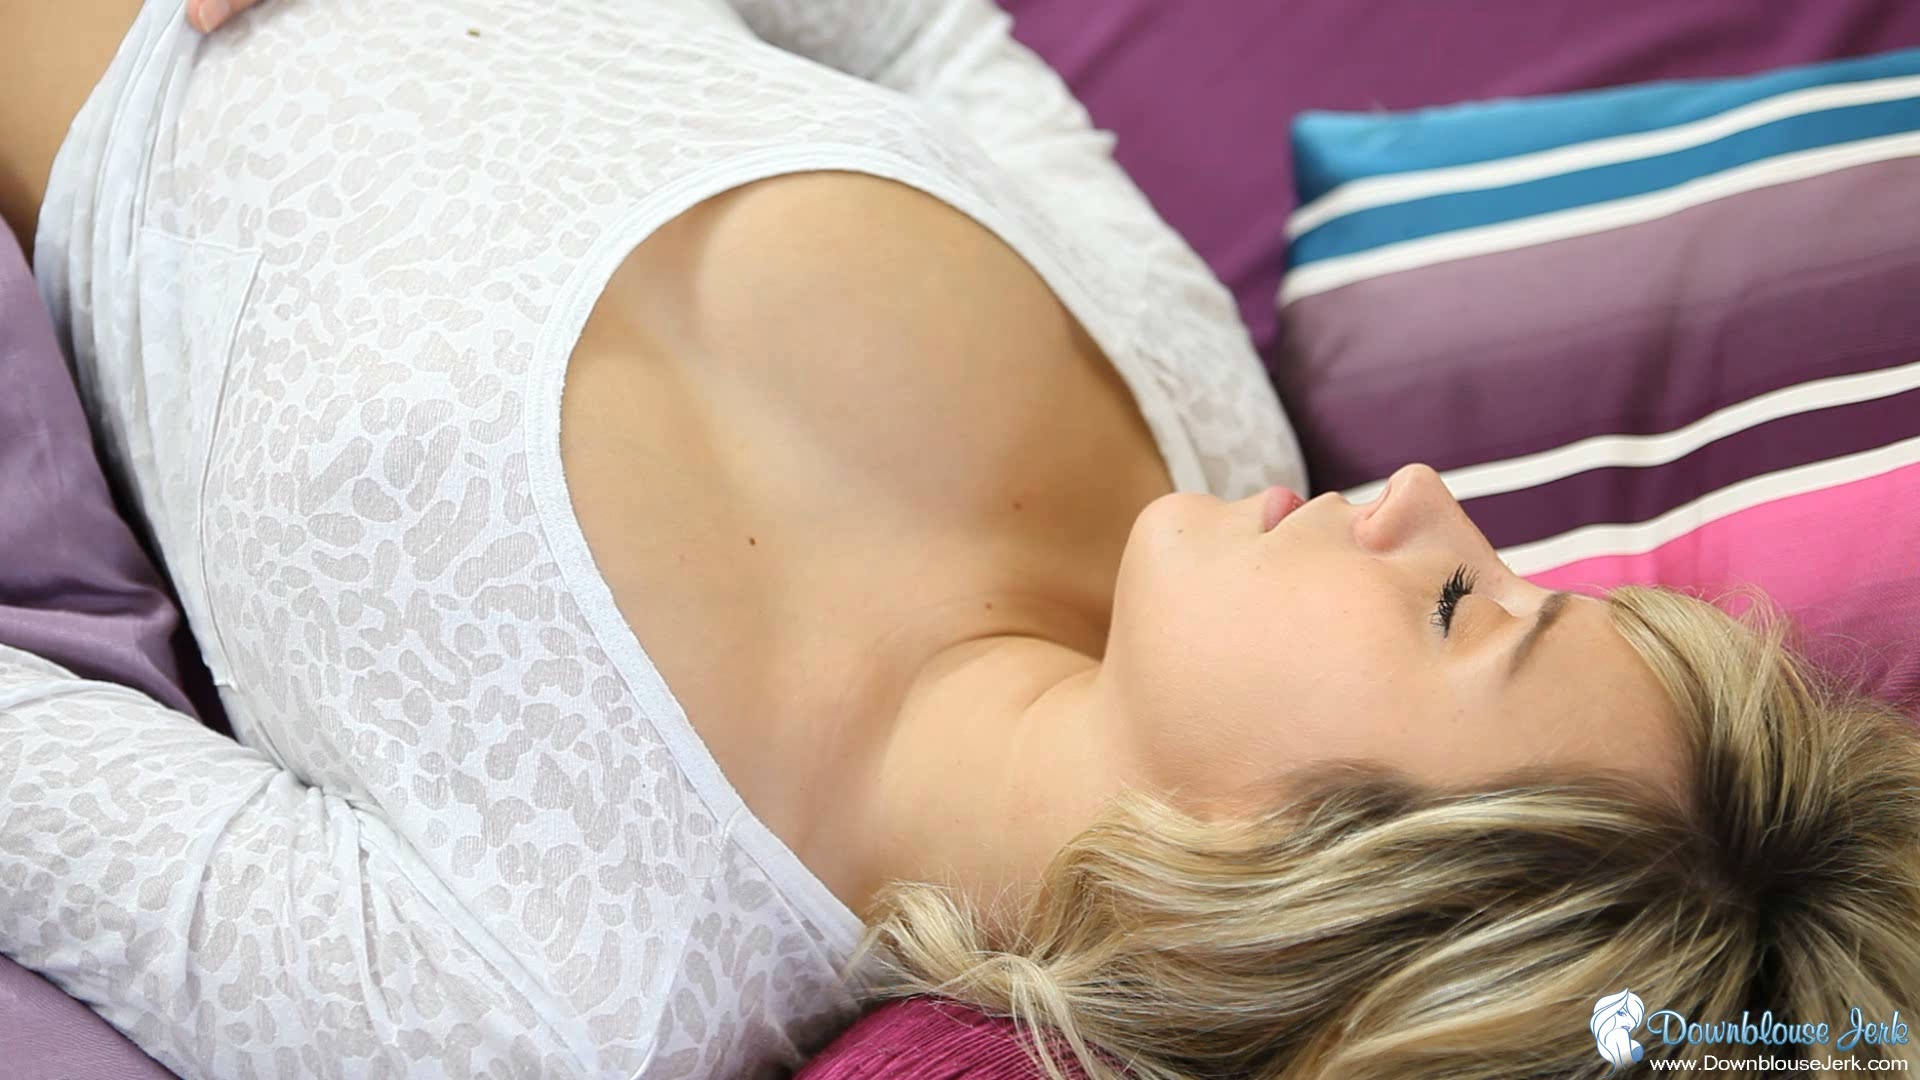 Congratulate, Downblouse boobs sleeping answer